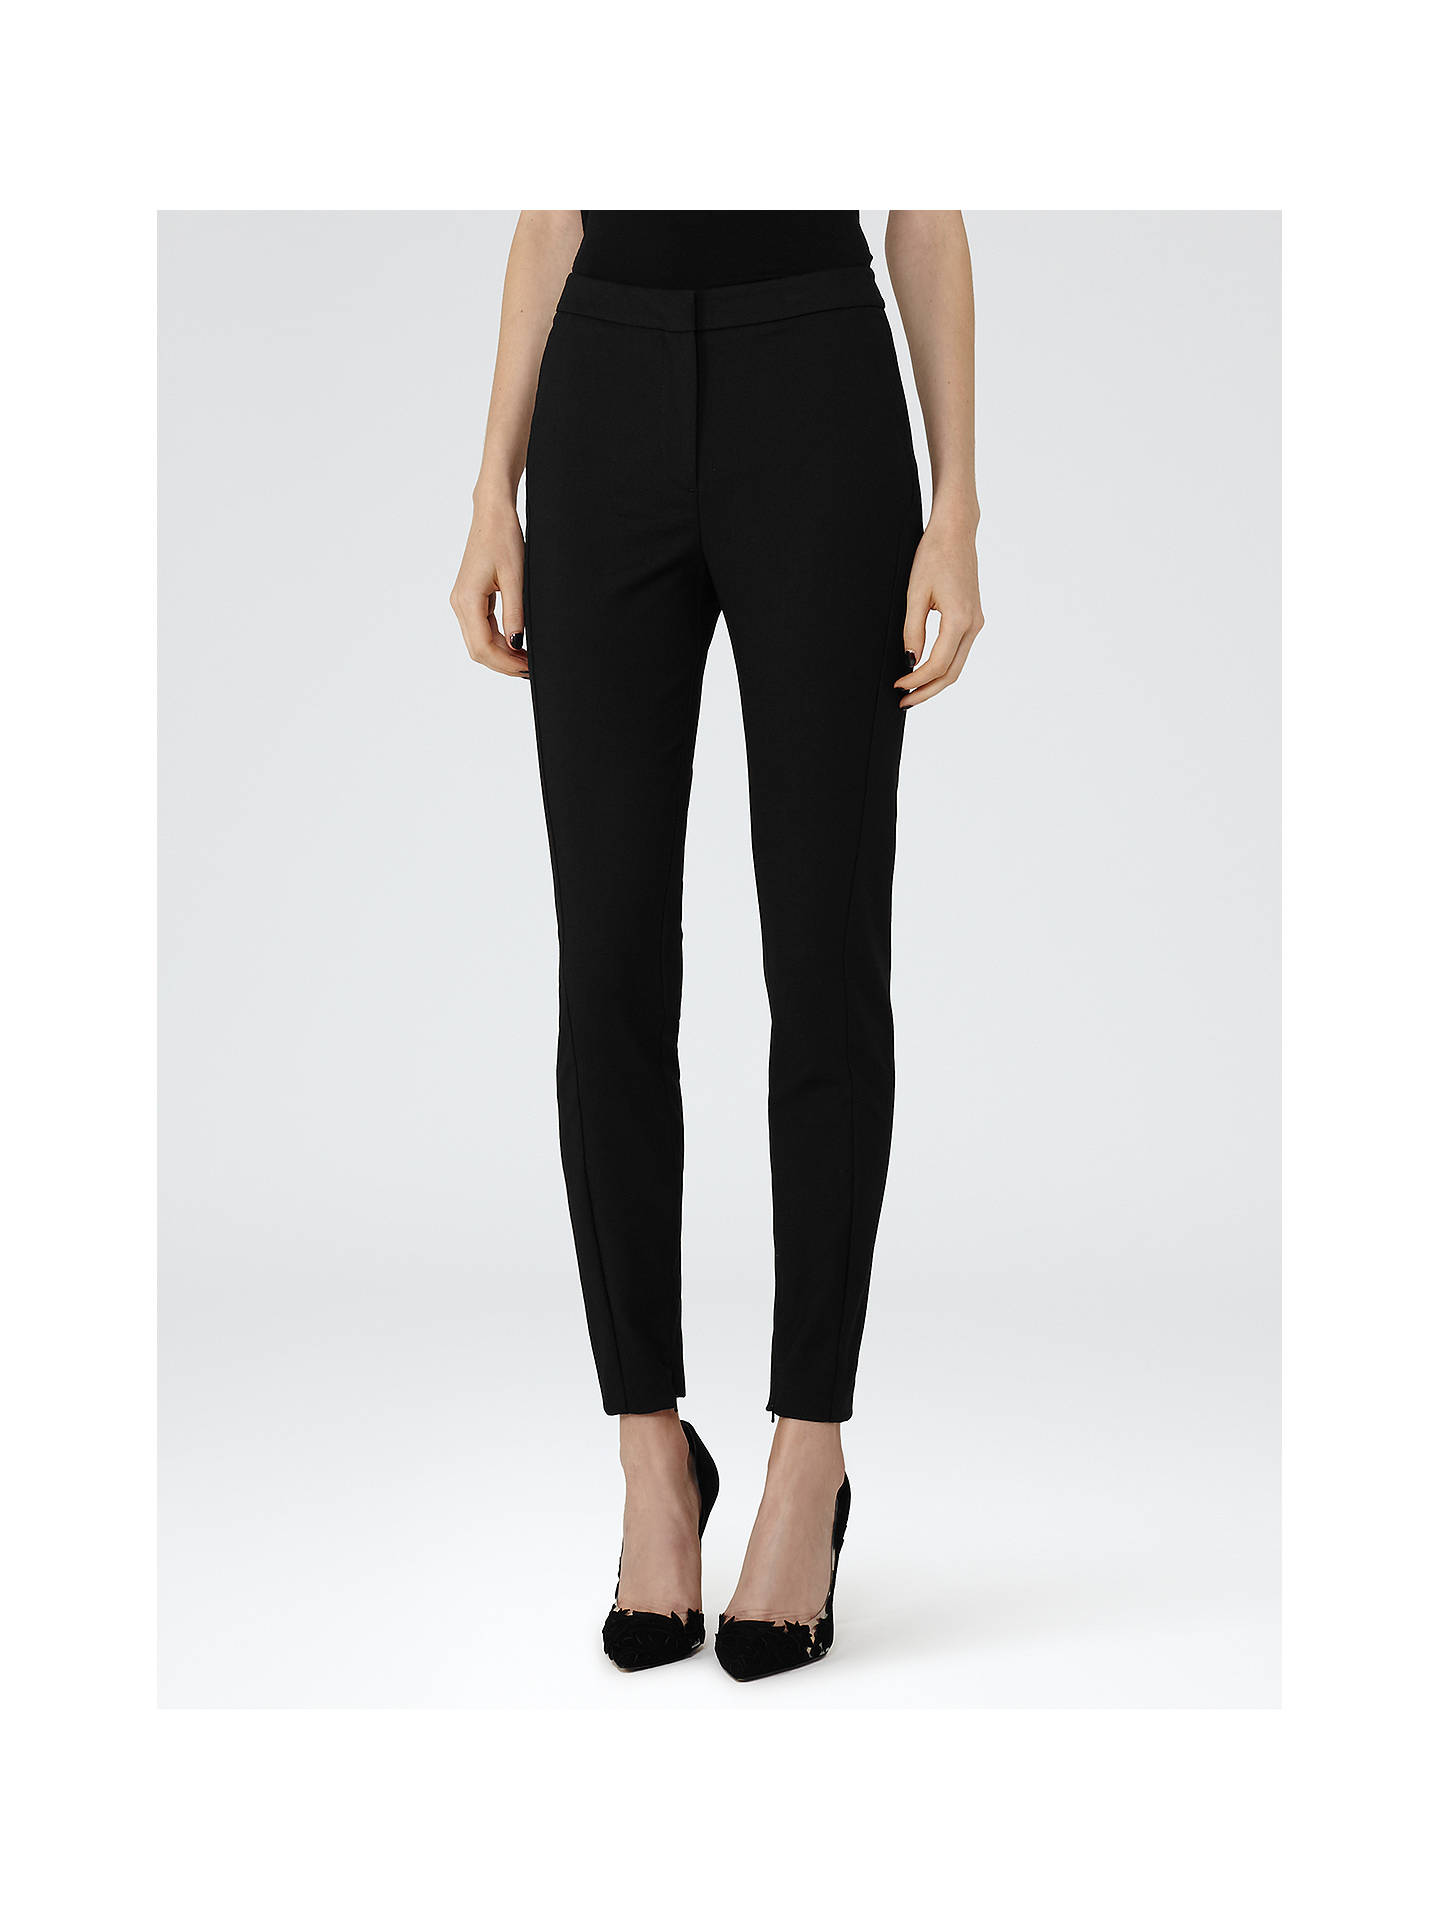 BuyReiss Darlas Skinny Trousers, Black, 6 Online at johnlewis.com